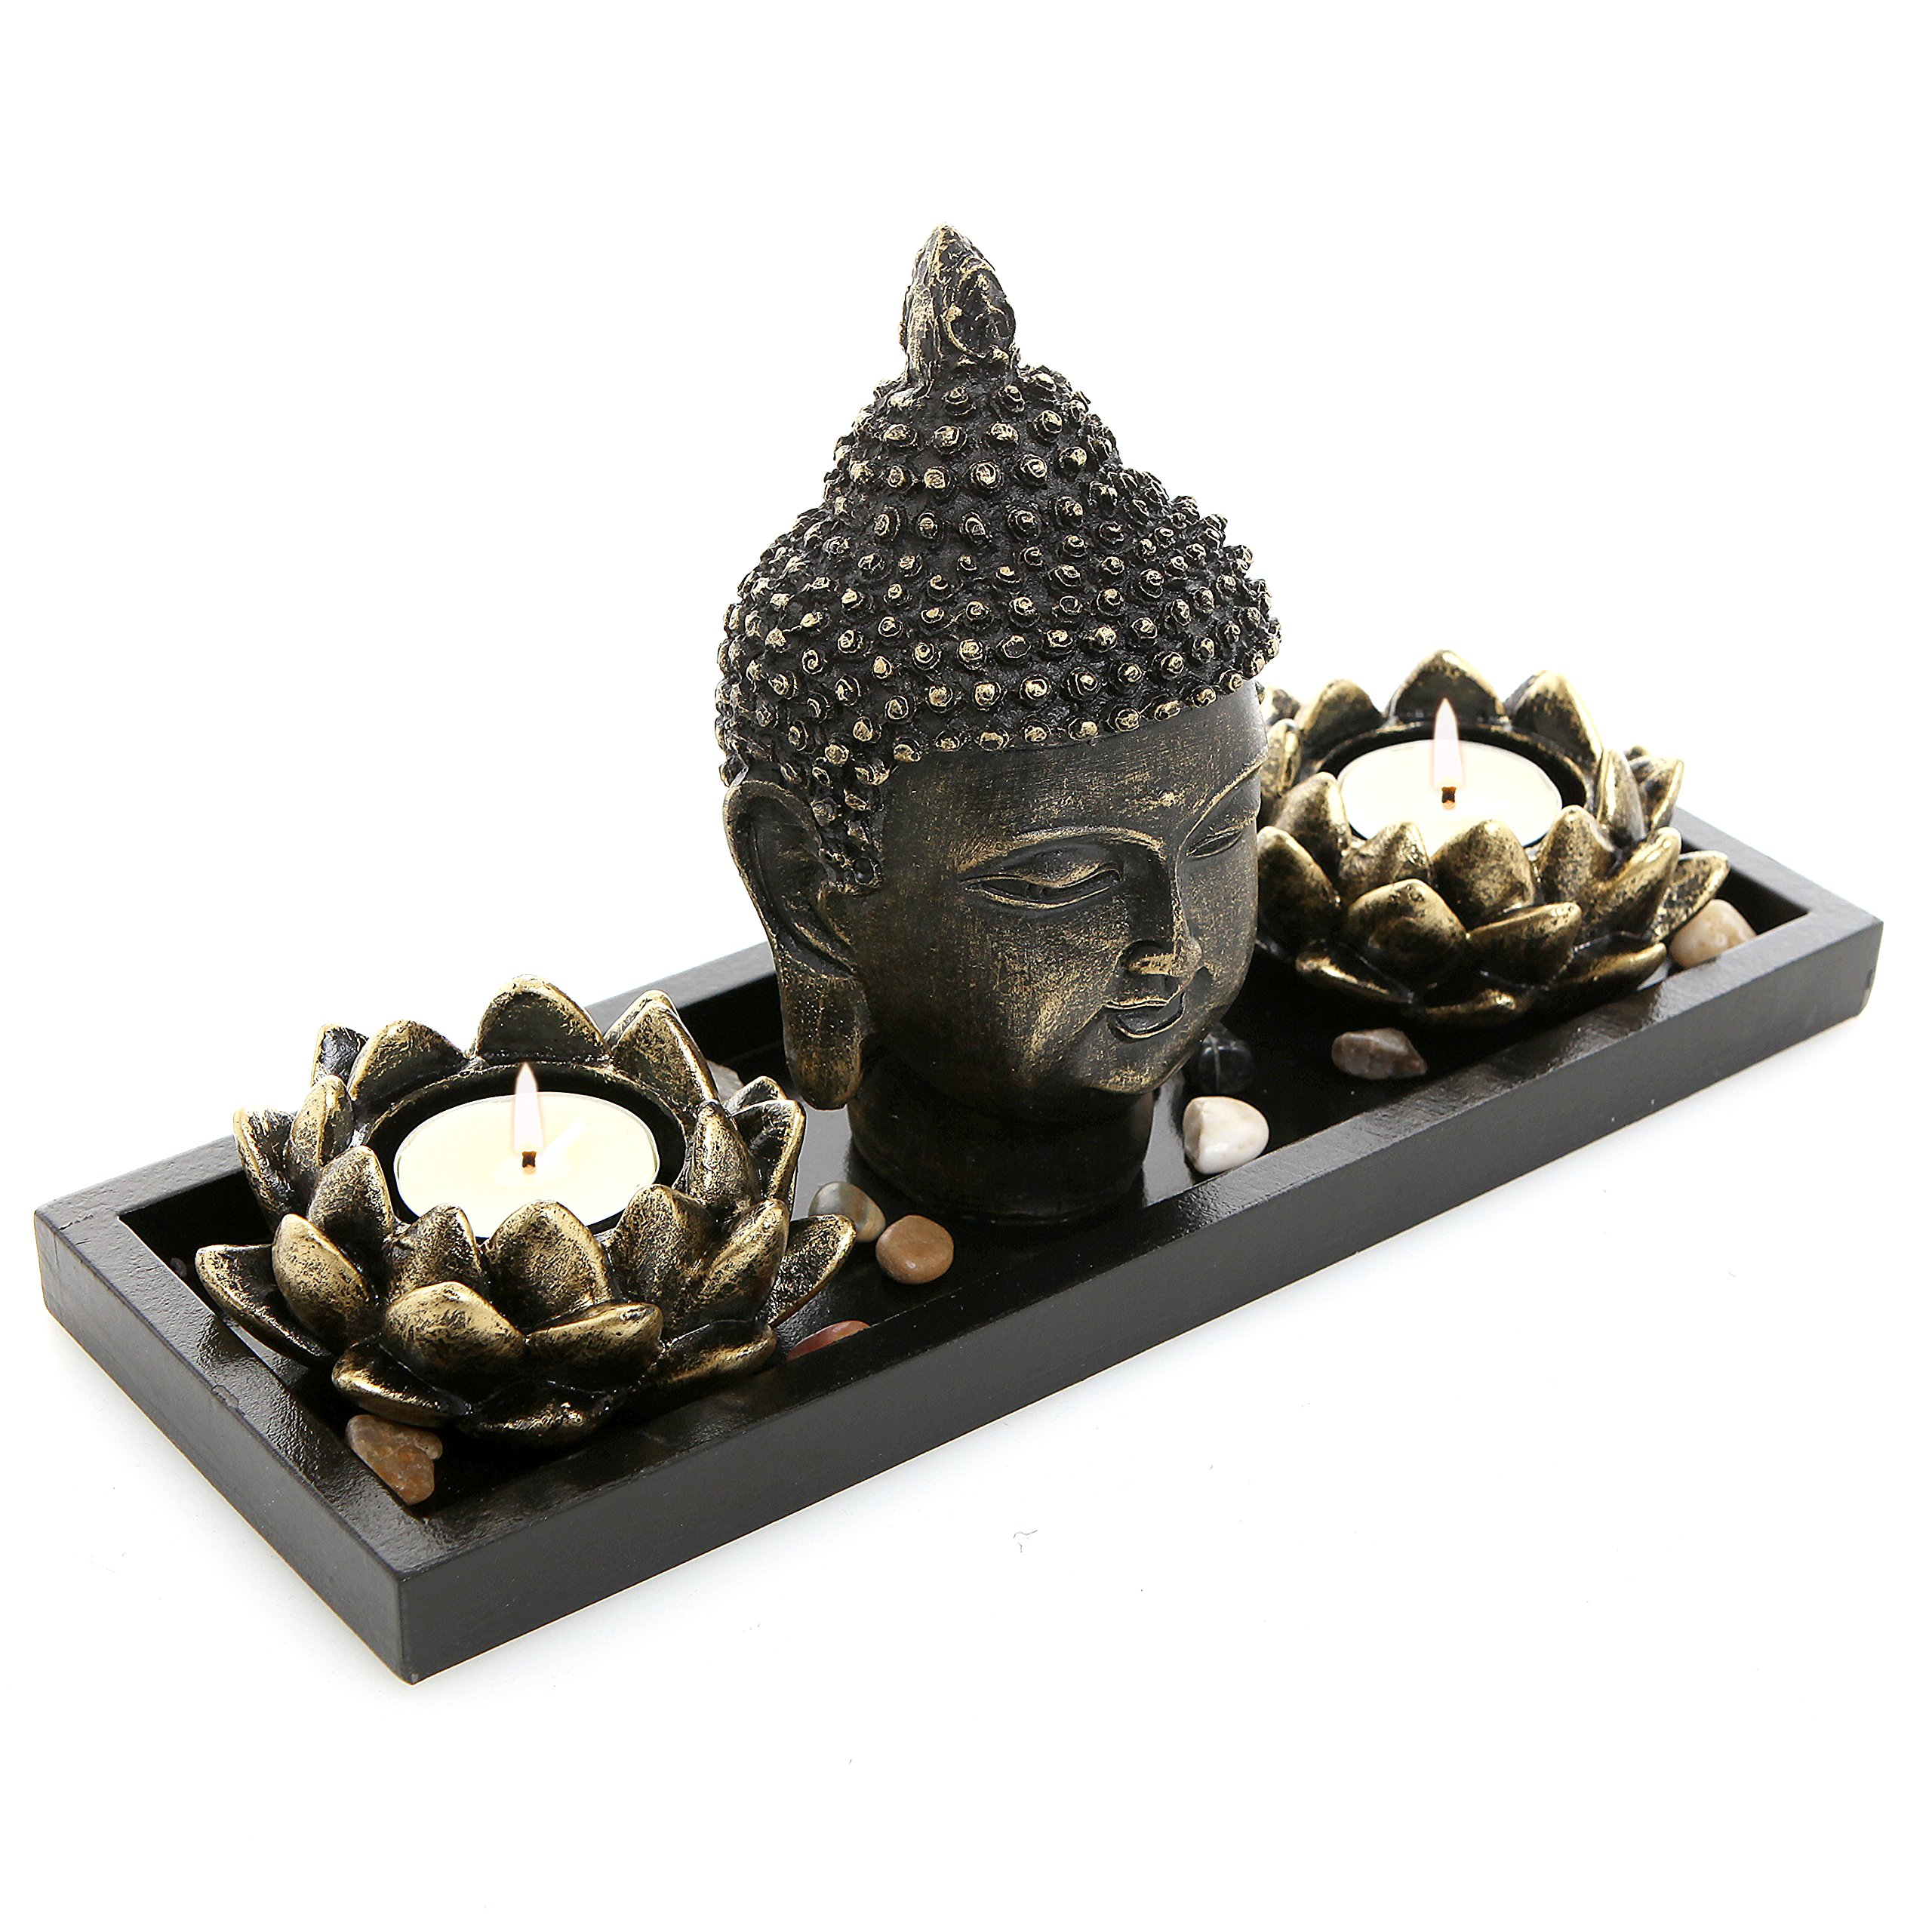 Bduddha Head Sculpture Zen Gardet & Wooden Display Tray, Black